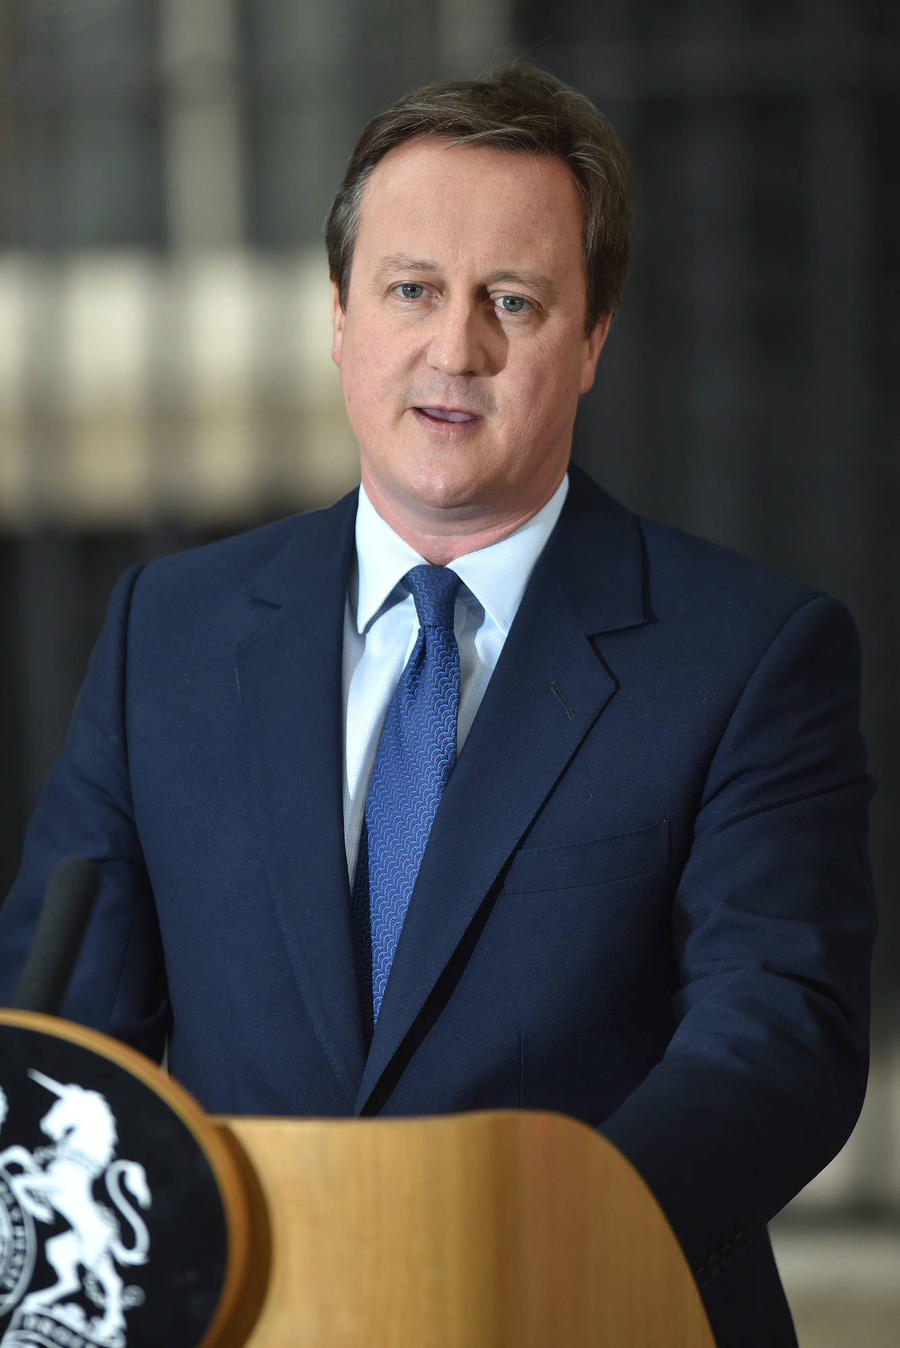 British Prime Minister Officially Steps Down